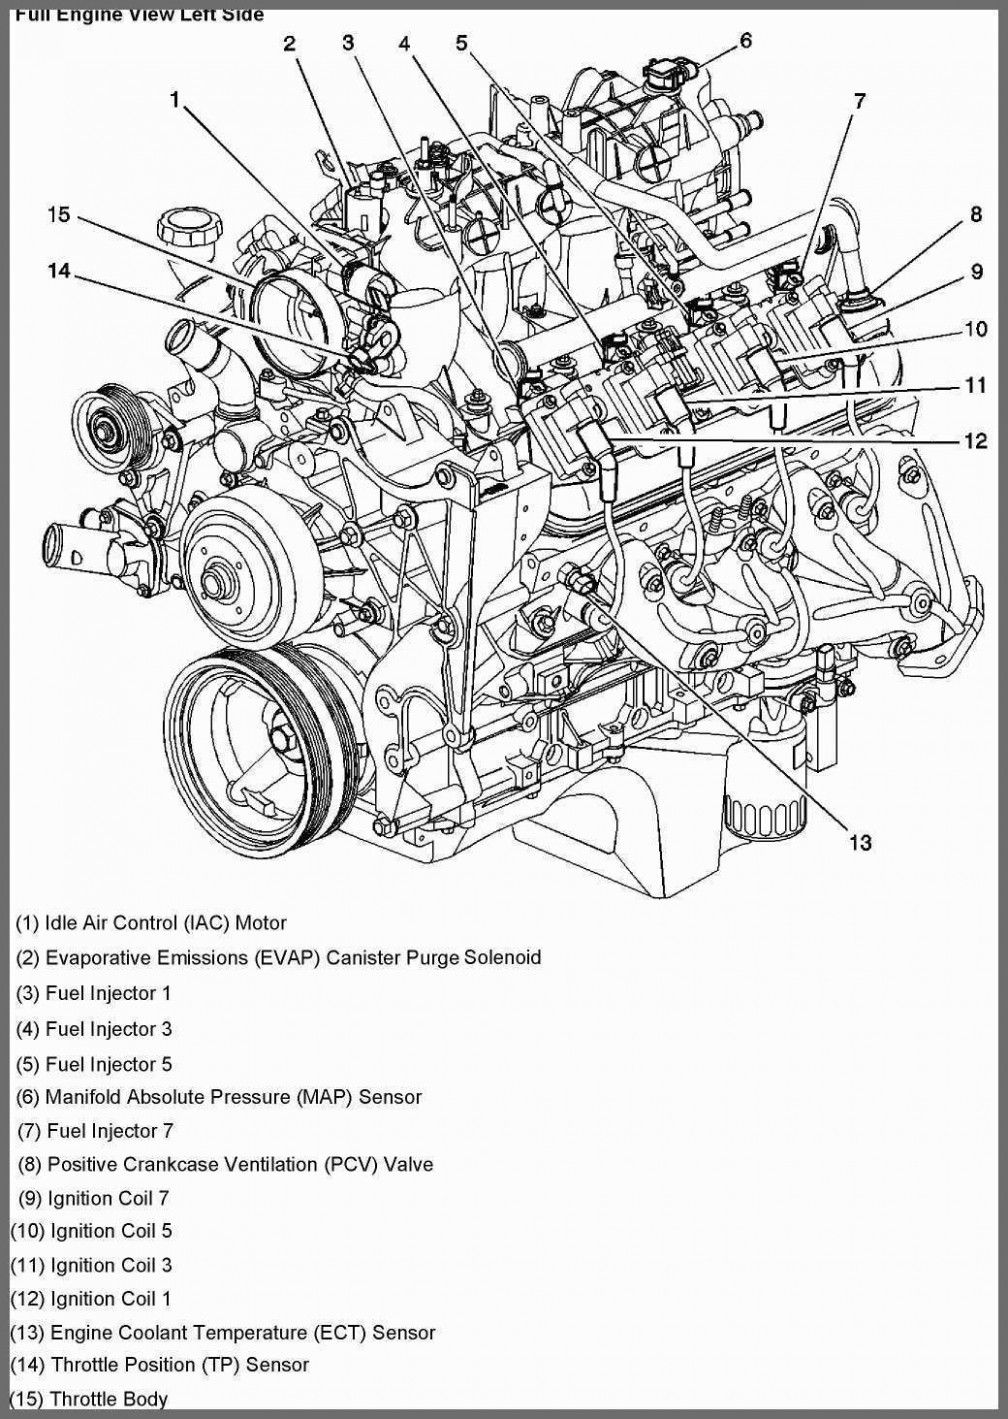 V8 Engine Block Diagram In 2020 Chevy Trucks Truck Engine 1984 Chevy Truck